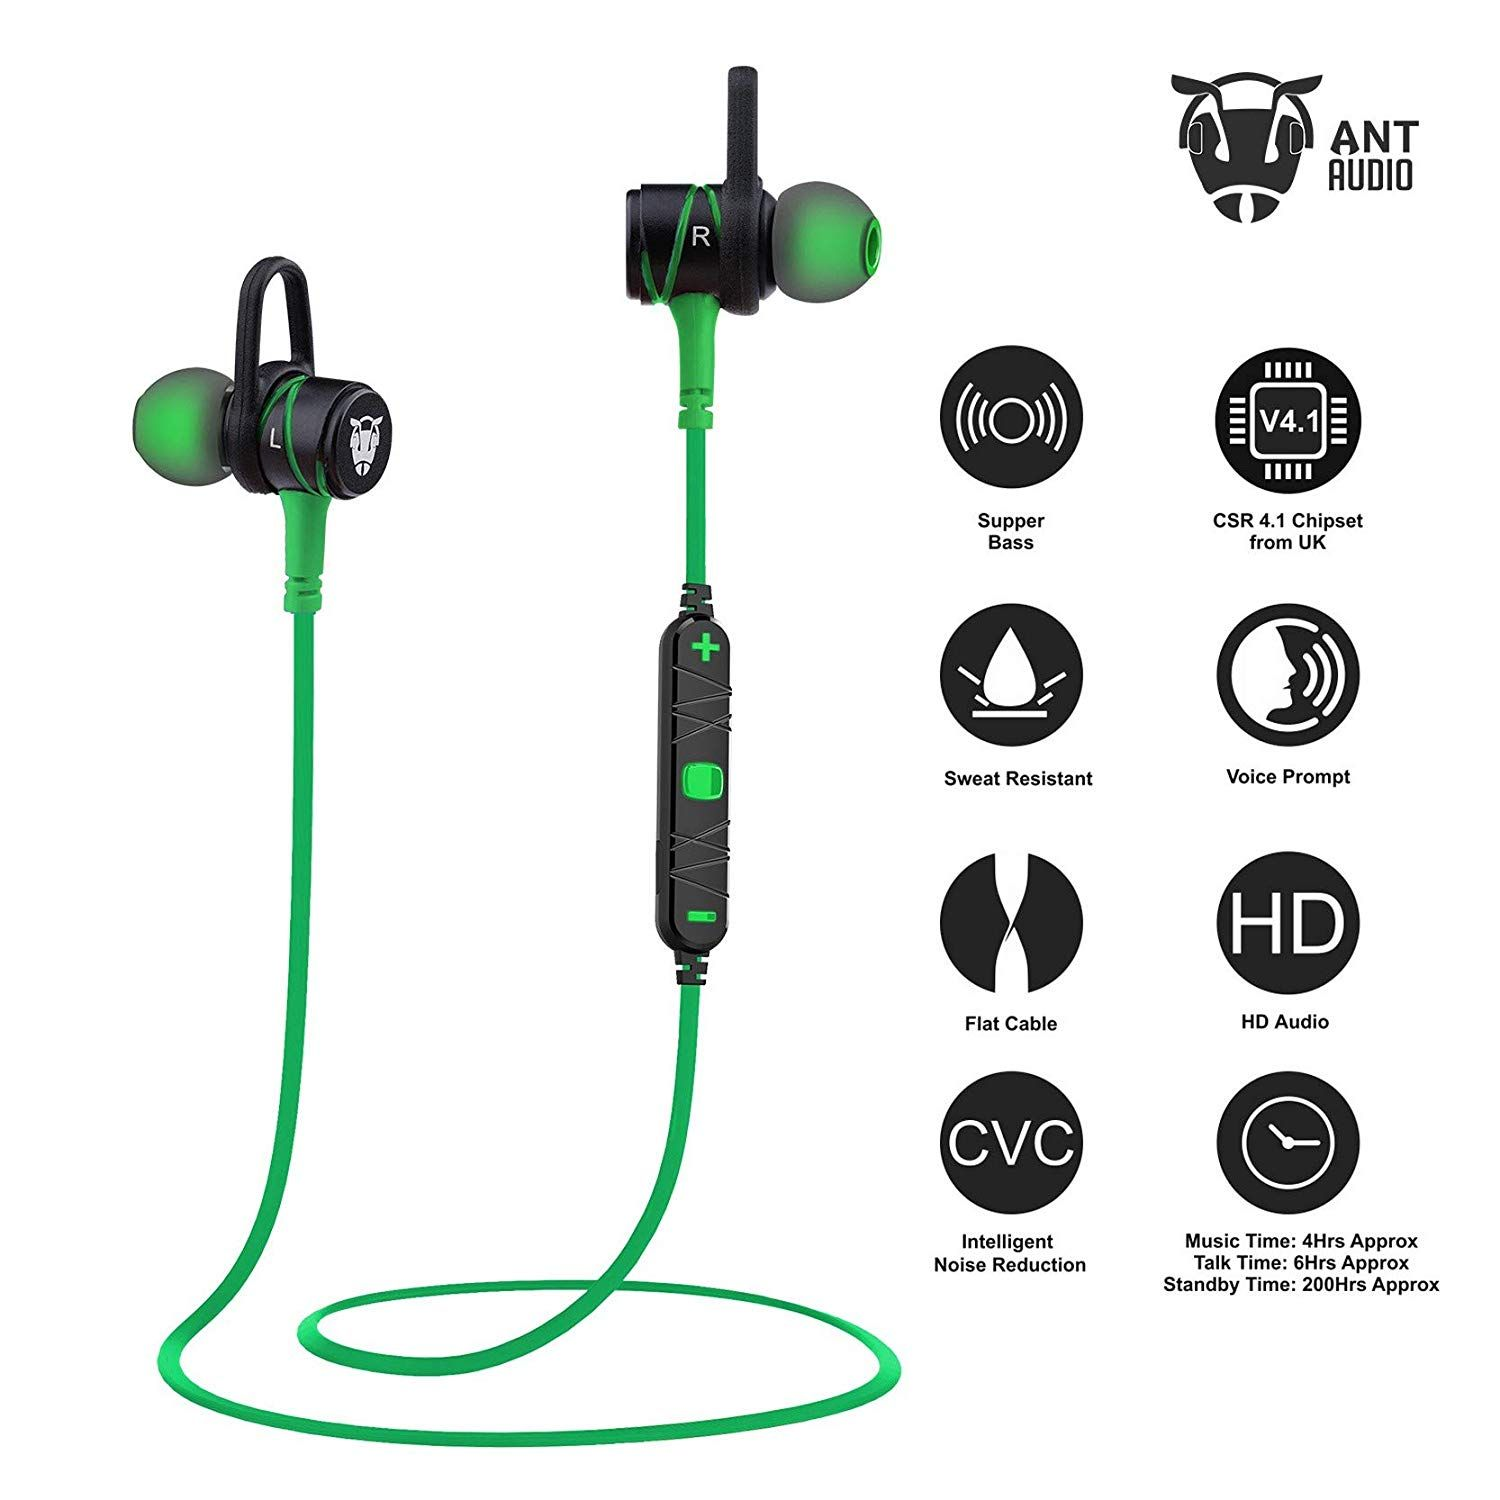 6 Best Earphones Under 2000 Rupees In India 2019 Earphone Bluetooth Earphones Latest Gadgets